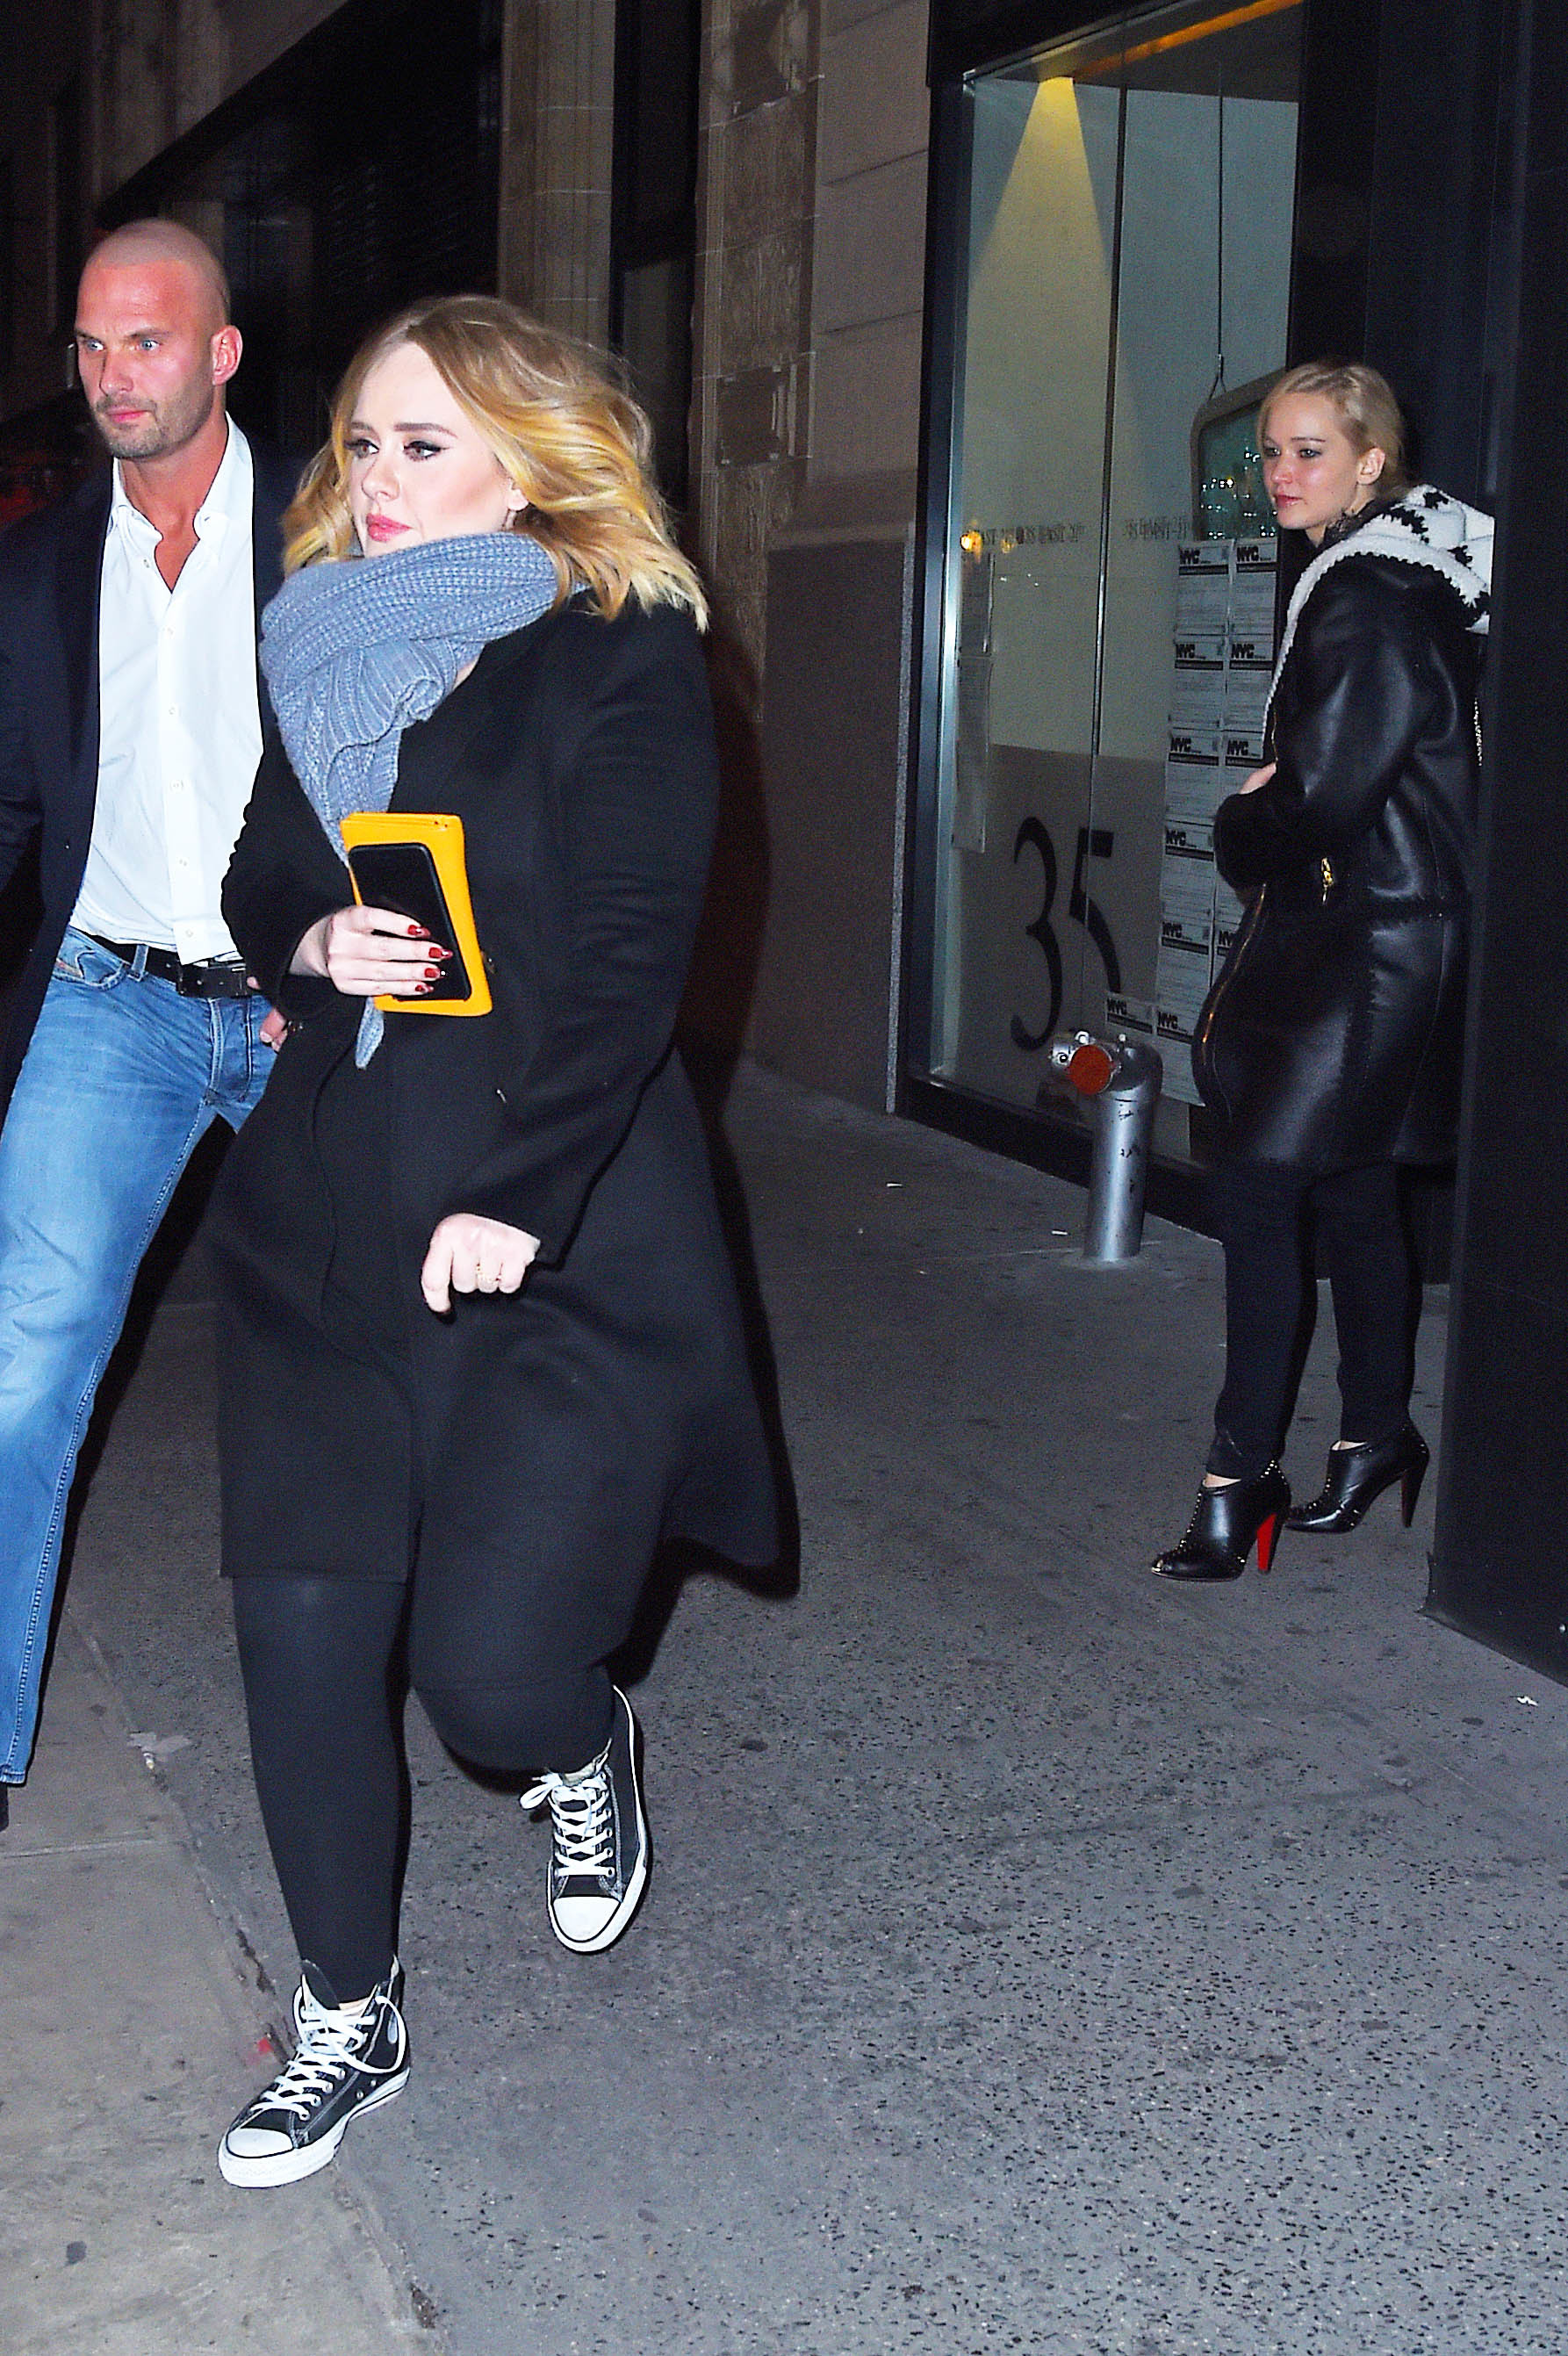 Adele and Jennifer Lawrence get dinner at Cosme Mexican restaurant in the Flatiron in New York on Nov. 23, 2015.